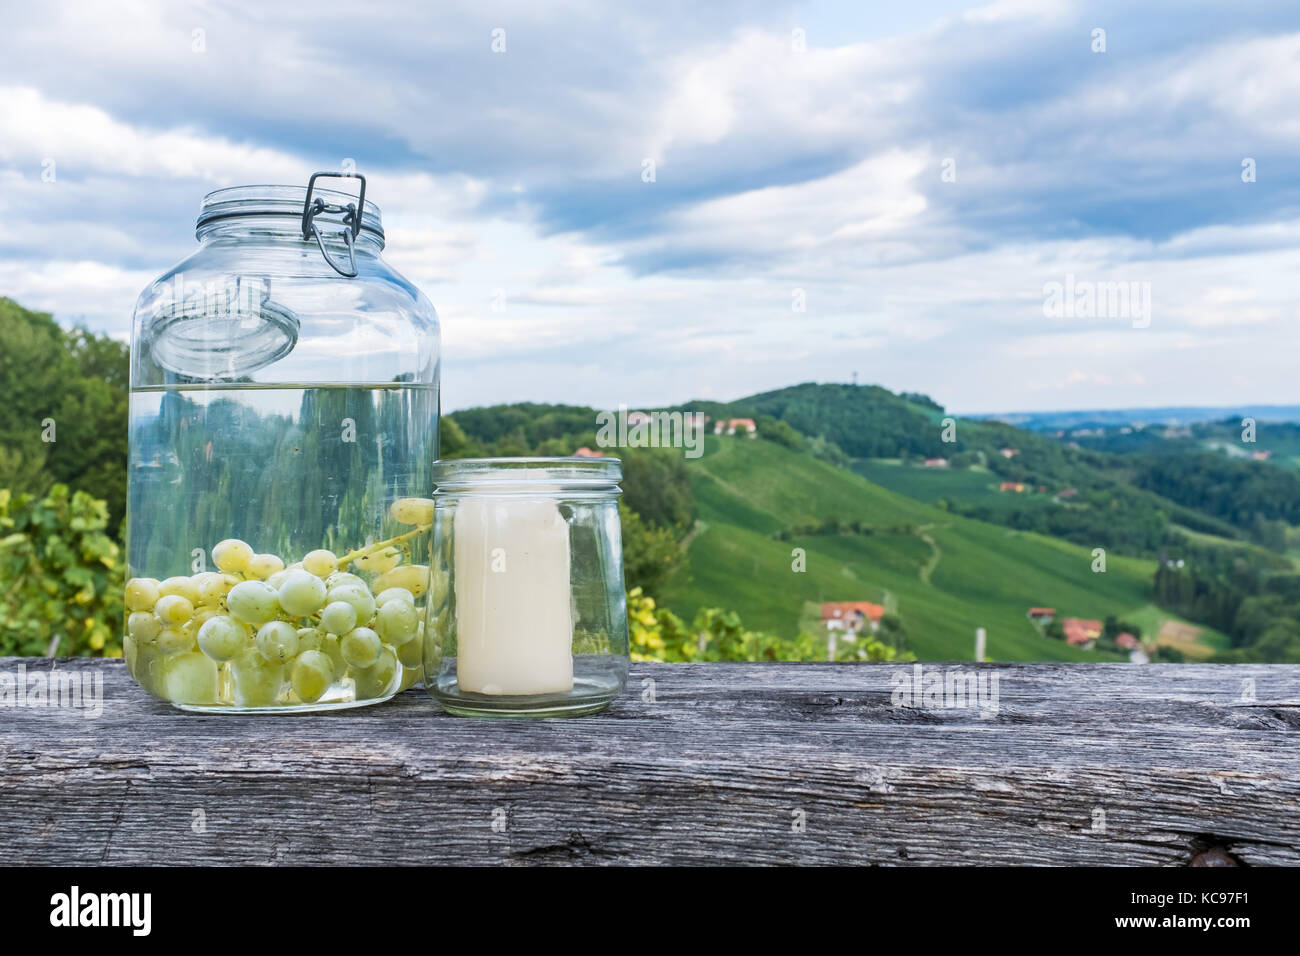 Jars with grapes and candle on wooden bench near vineyard along the south Styrian vine route in Austria, Europe - Stock Image